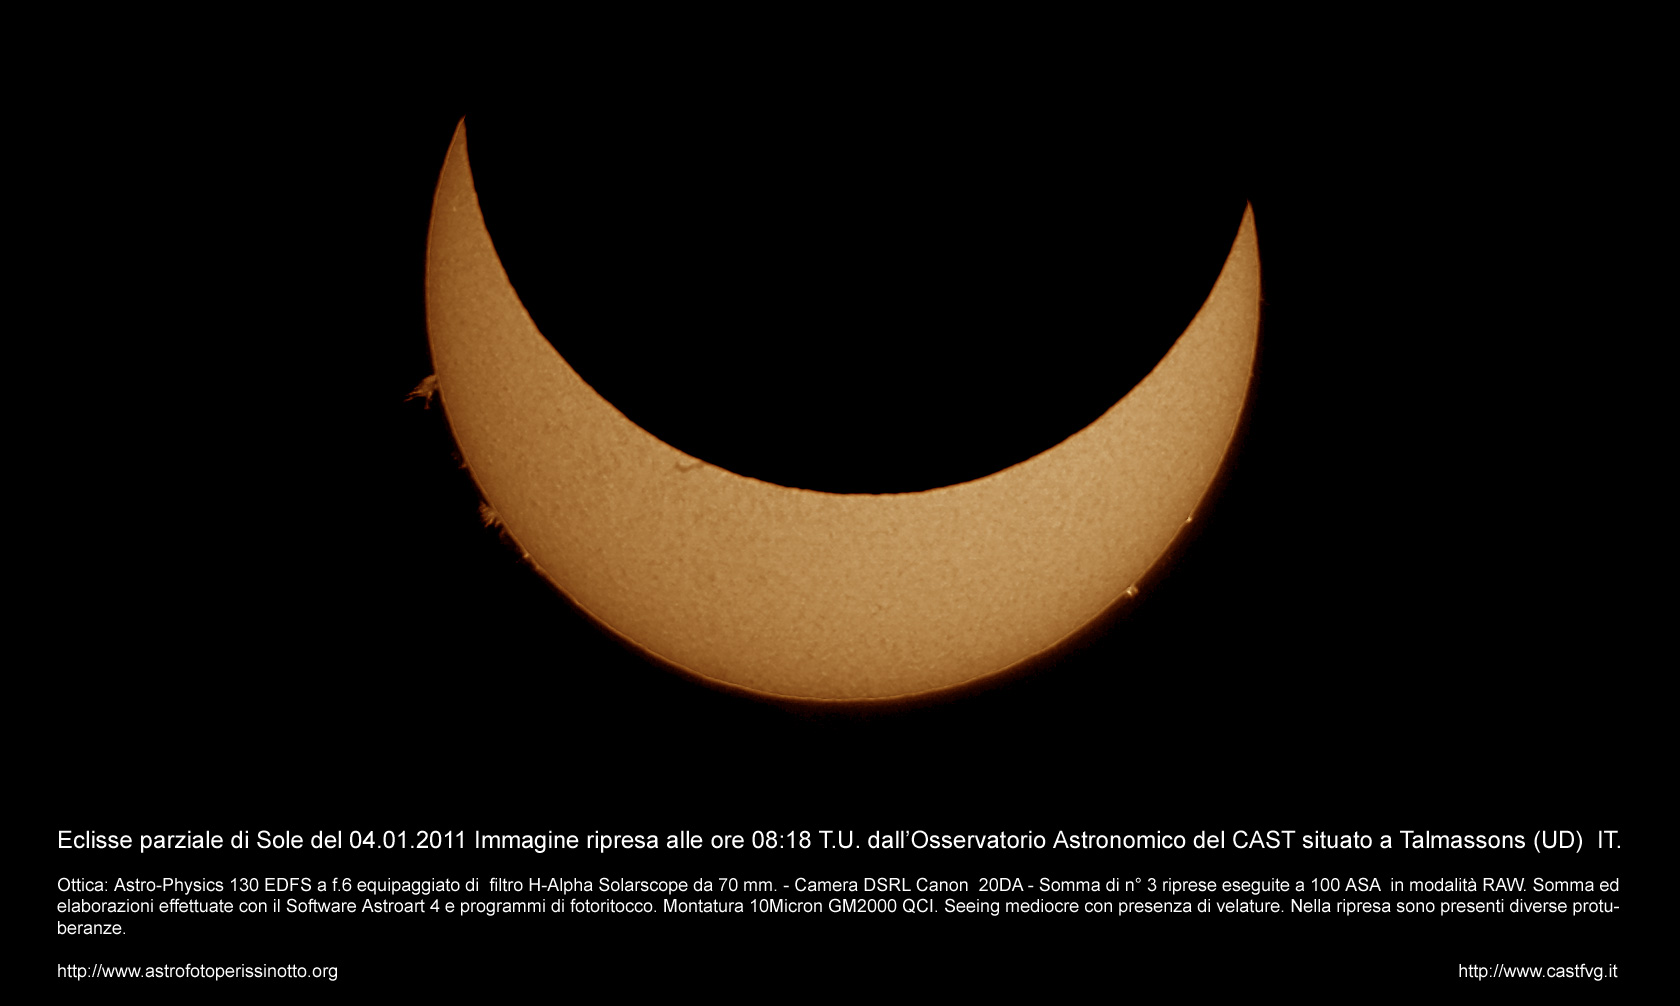 Partial sun eclipse photographed from Talmassons by Enrico Perissinotto: 162 KB